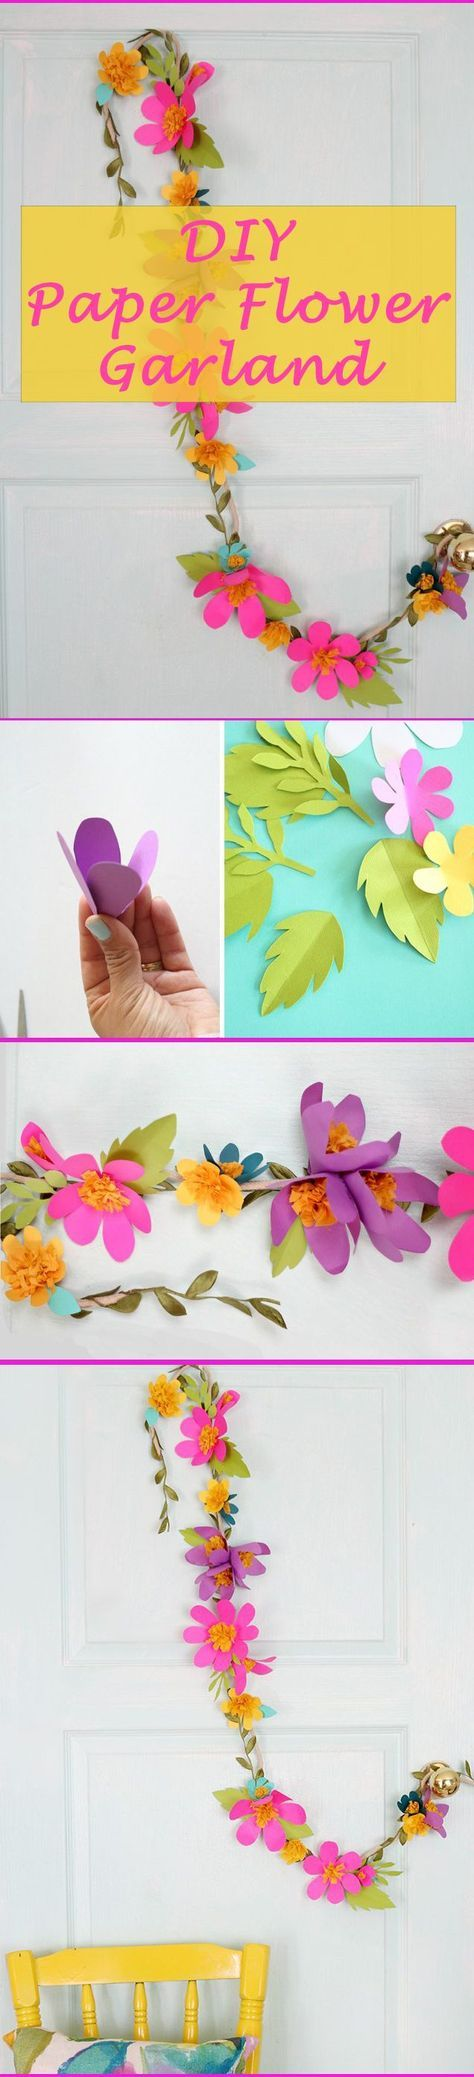 23 Best Paper Flowers Images On Pinterest Paper Flowers Garlands